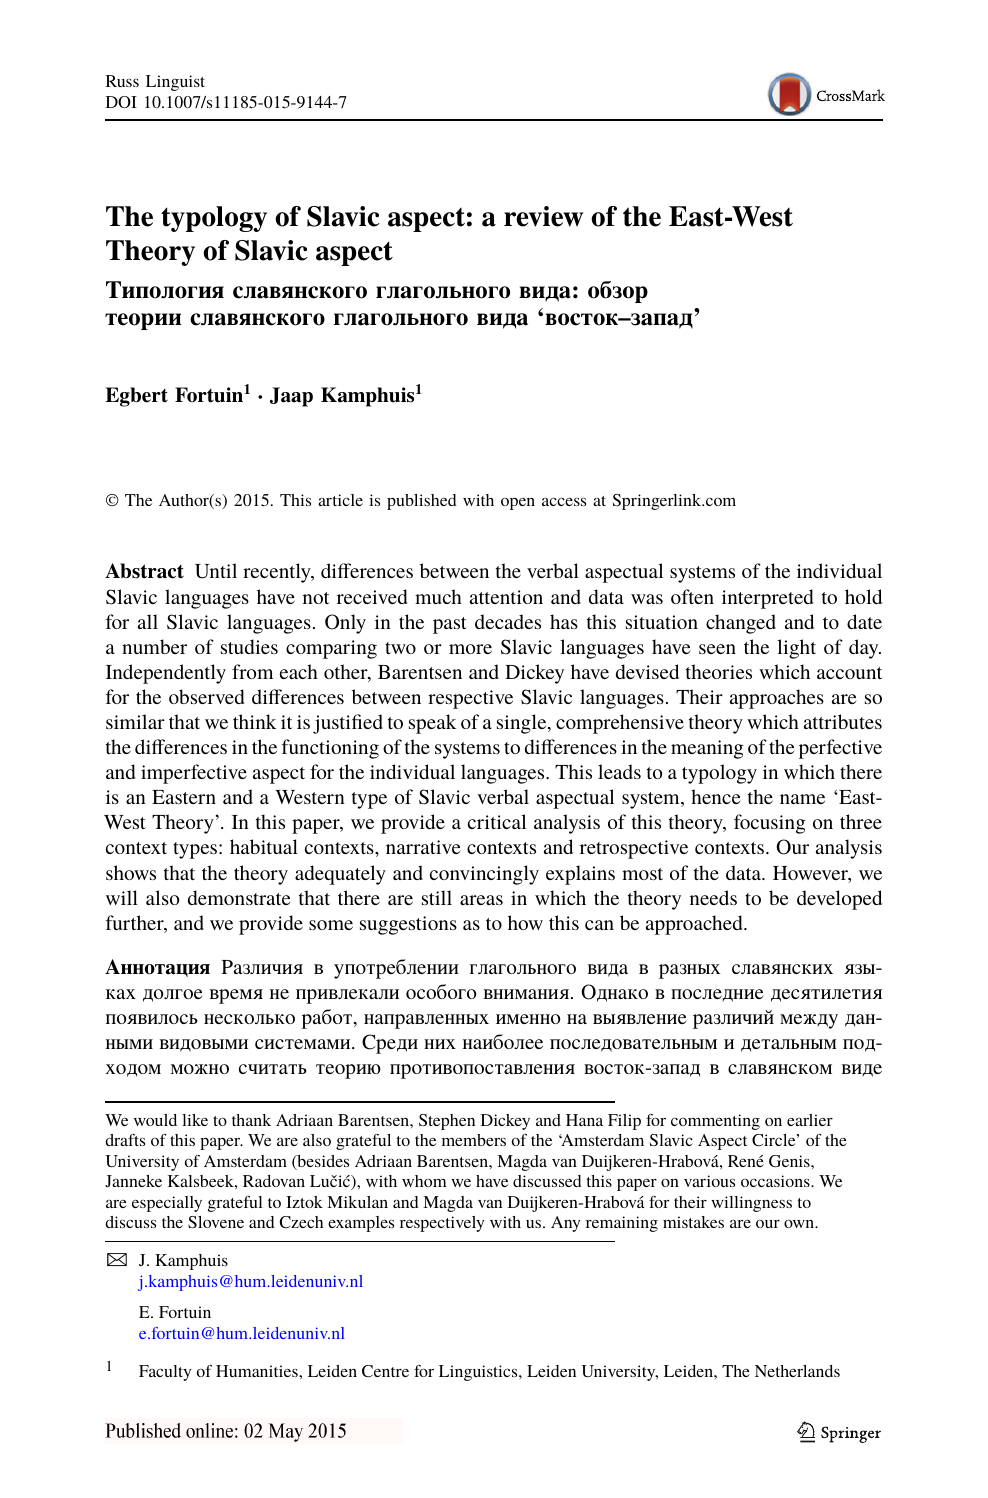 The typology of Slavic aspect: a review of the East-West Theory of